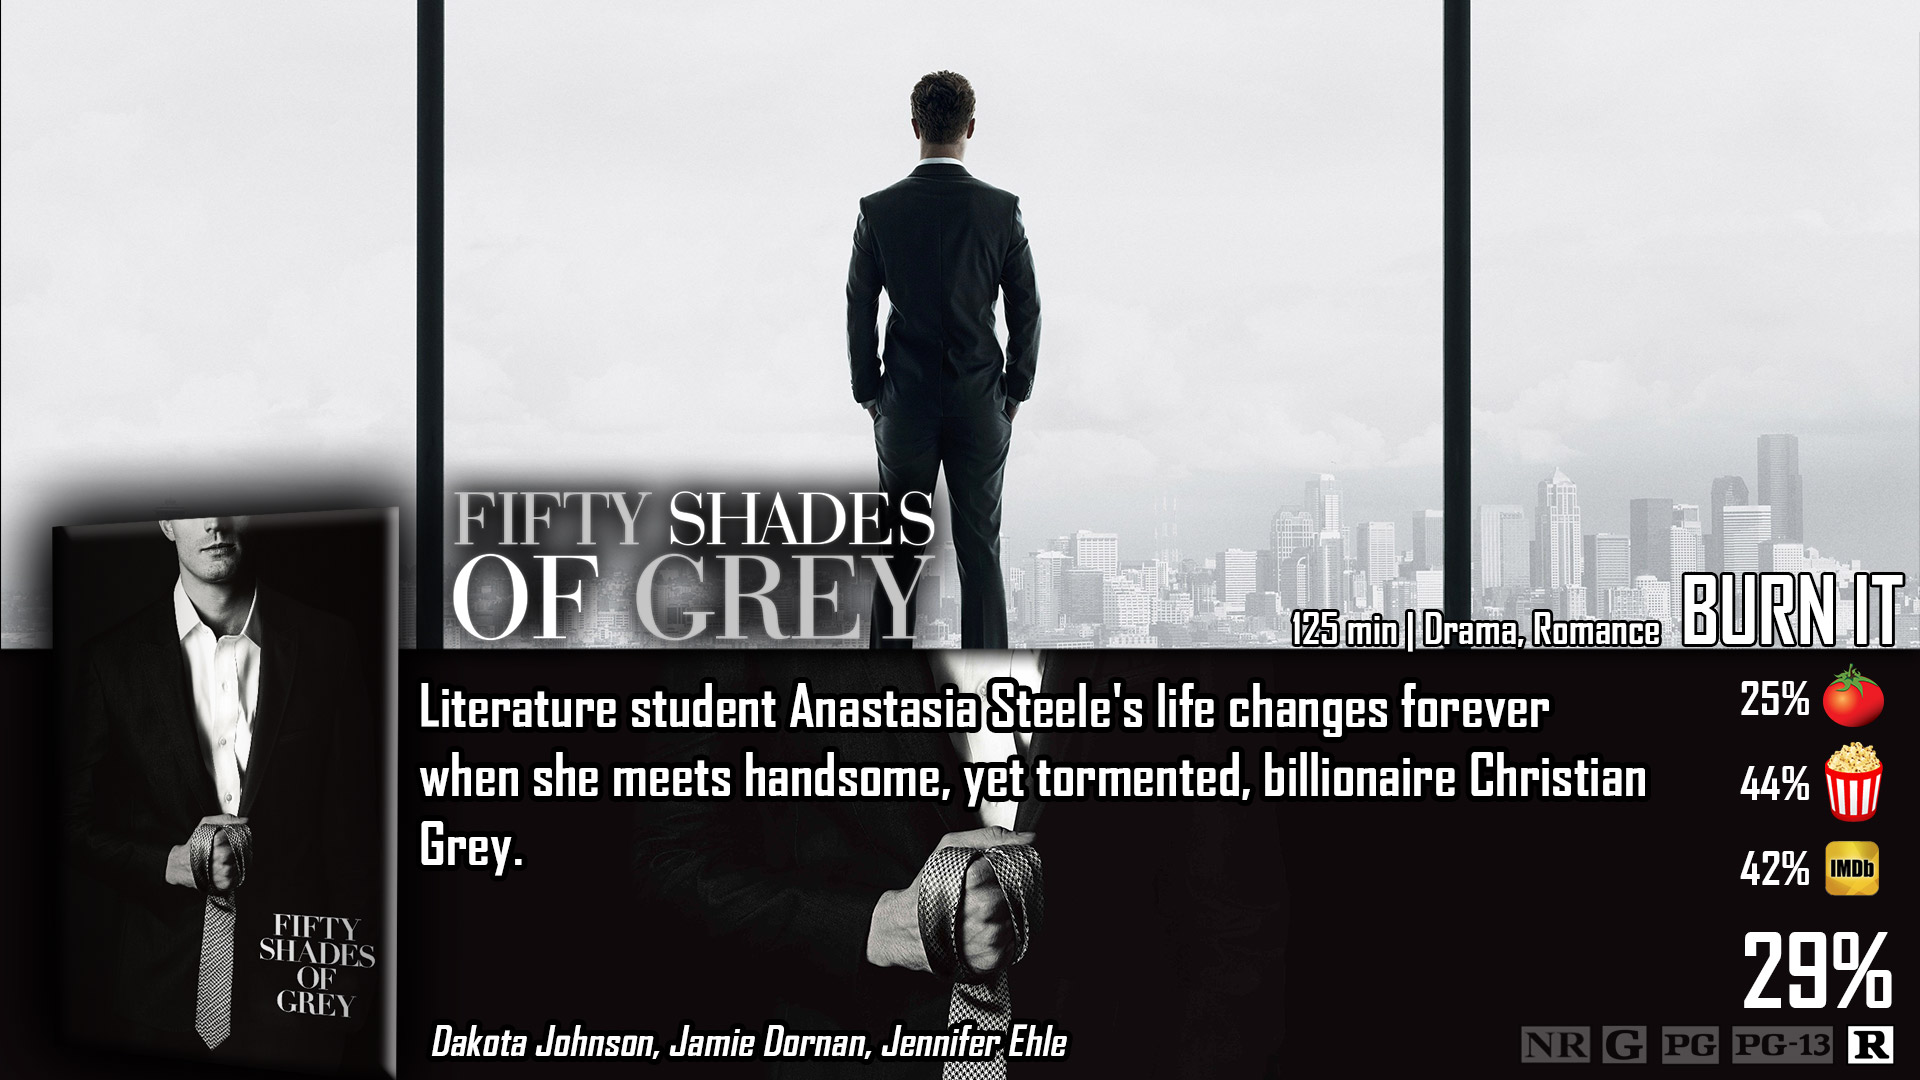 Fifty Shades of Grey (2015) – Dave Examines Movies